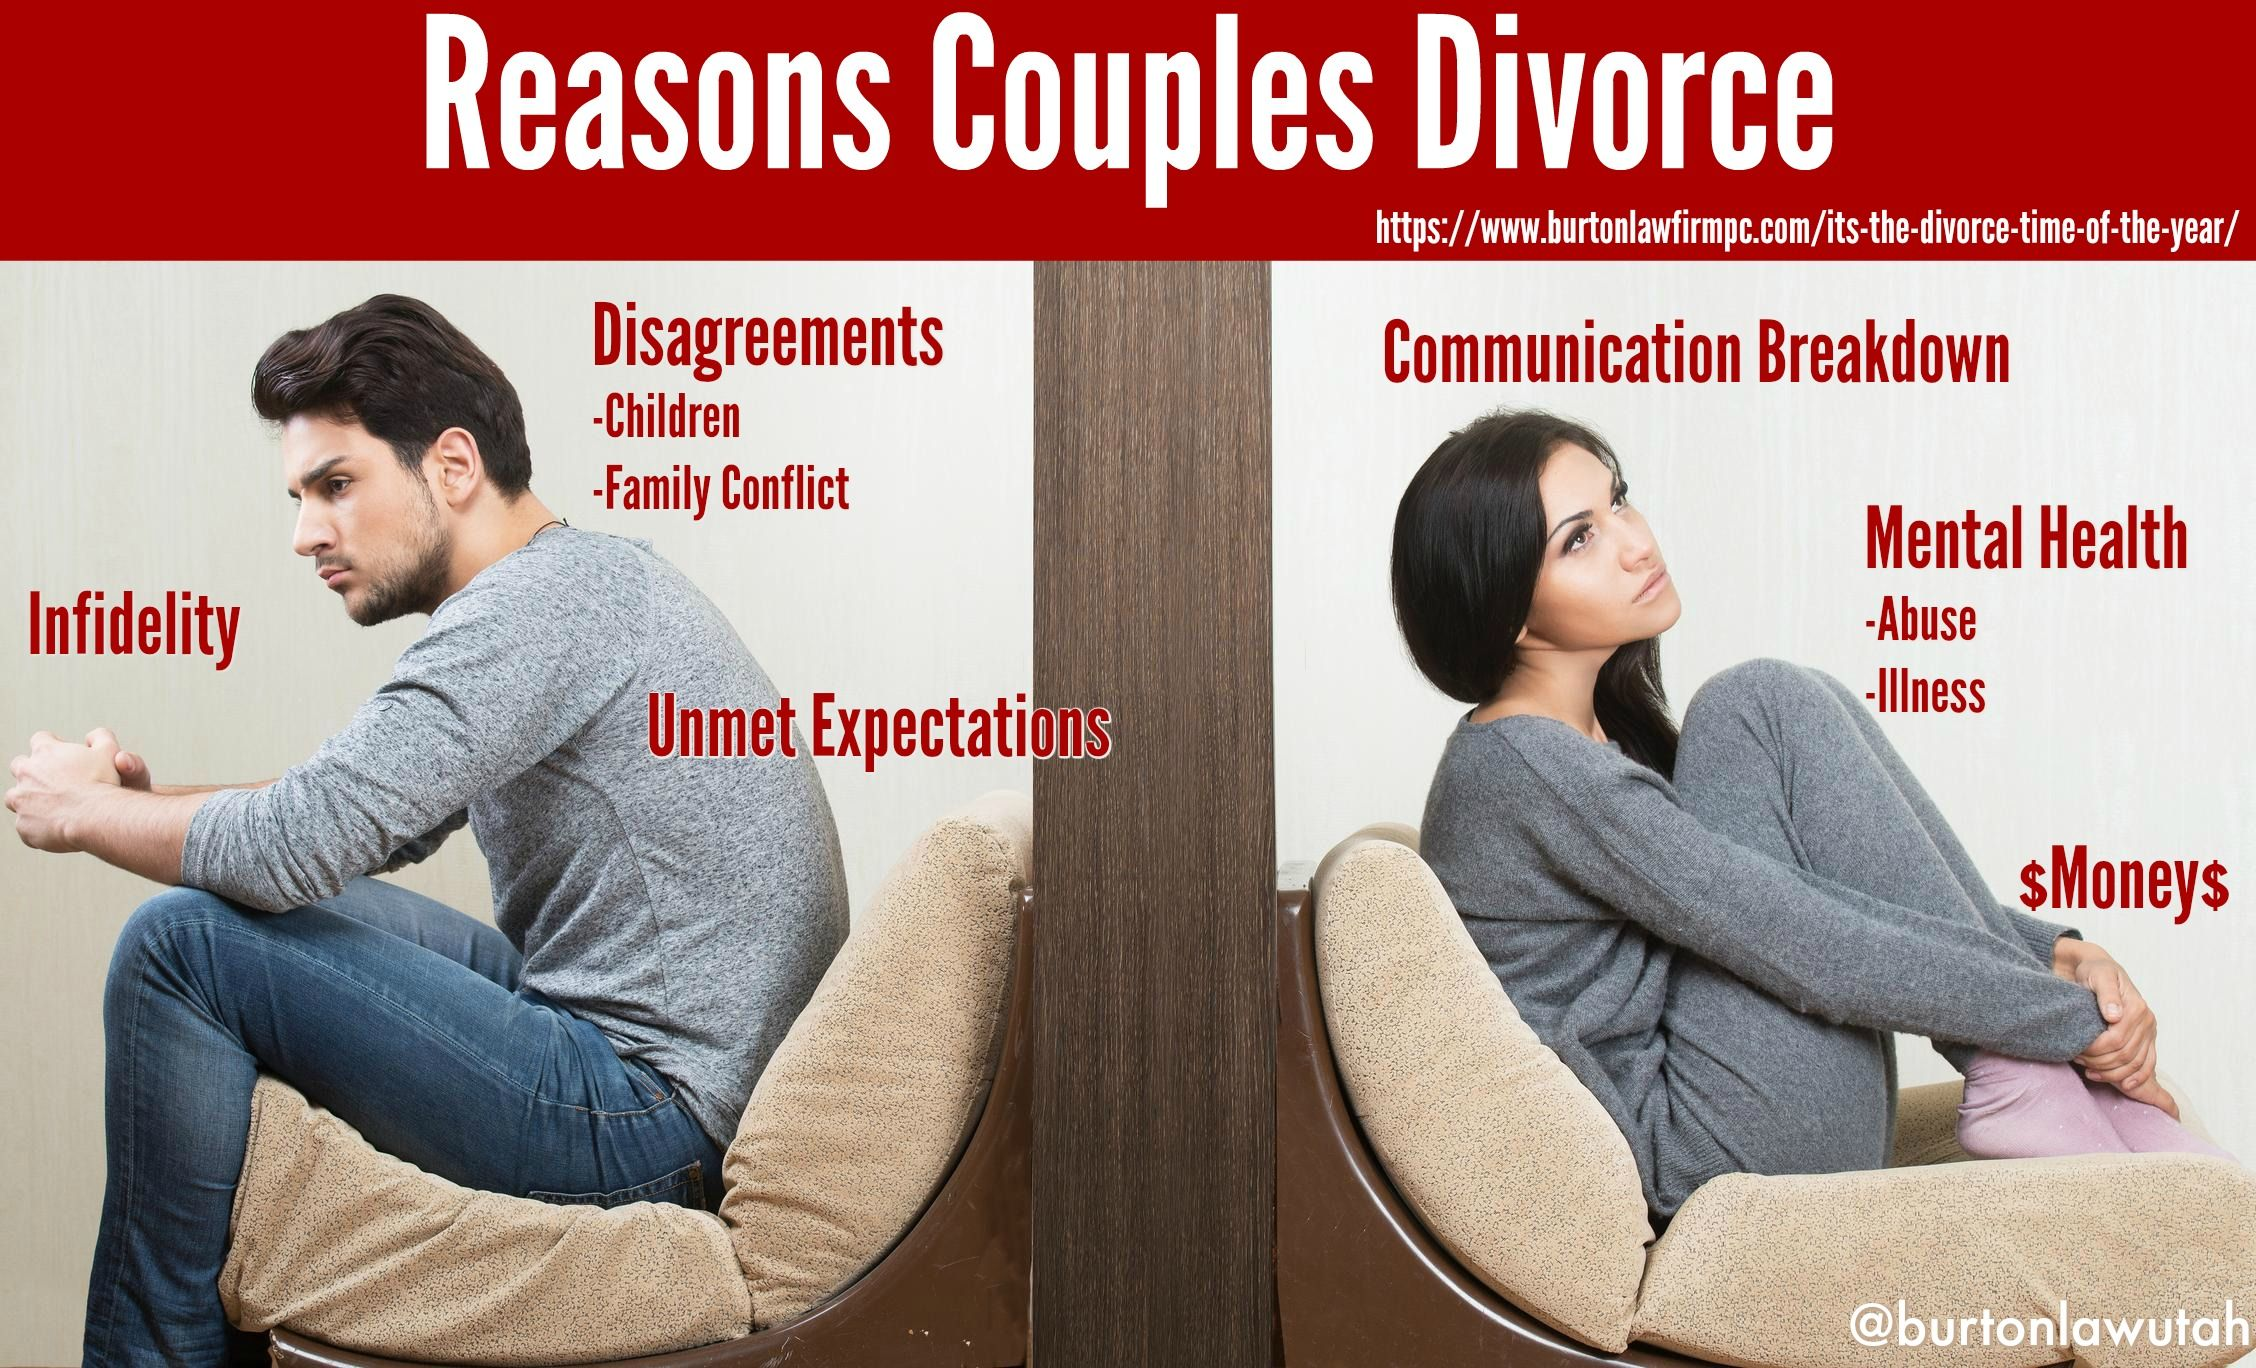 Reasons couples get divorced. Are you considering divorce